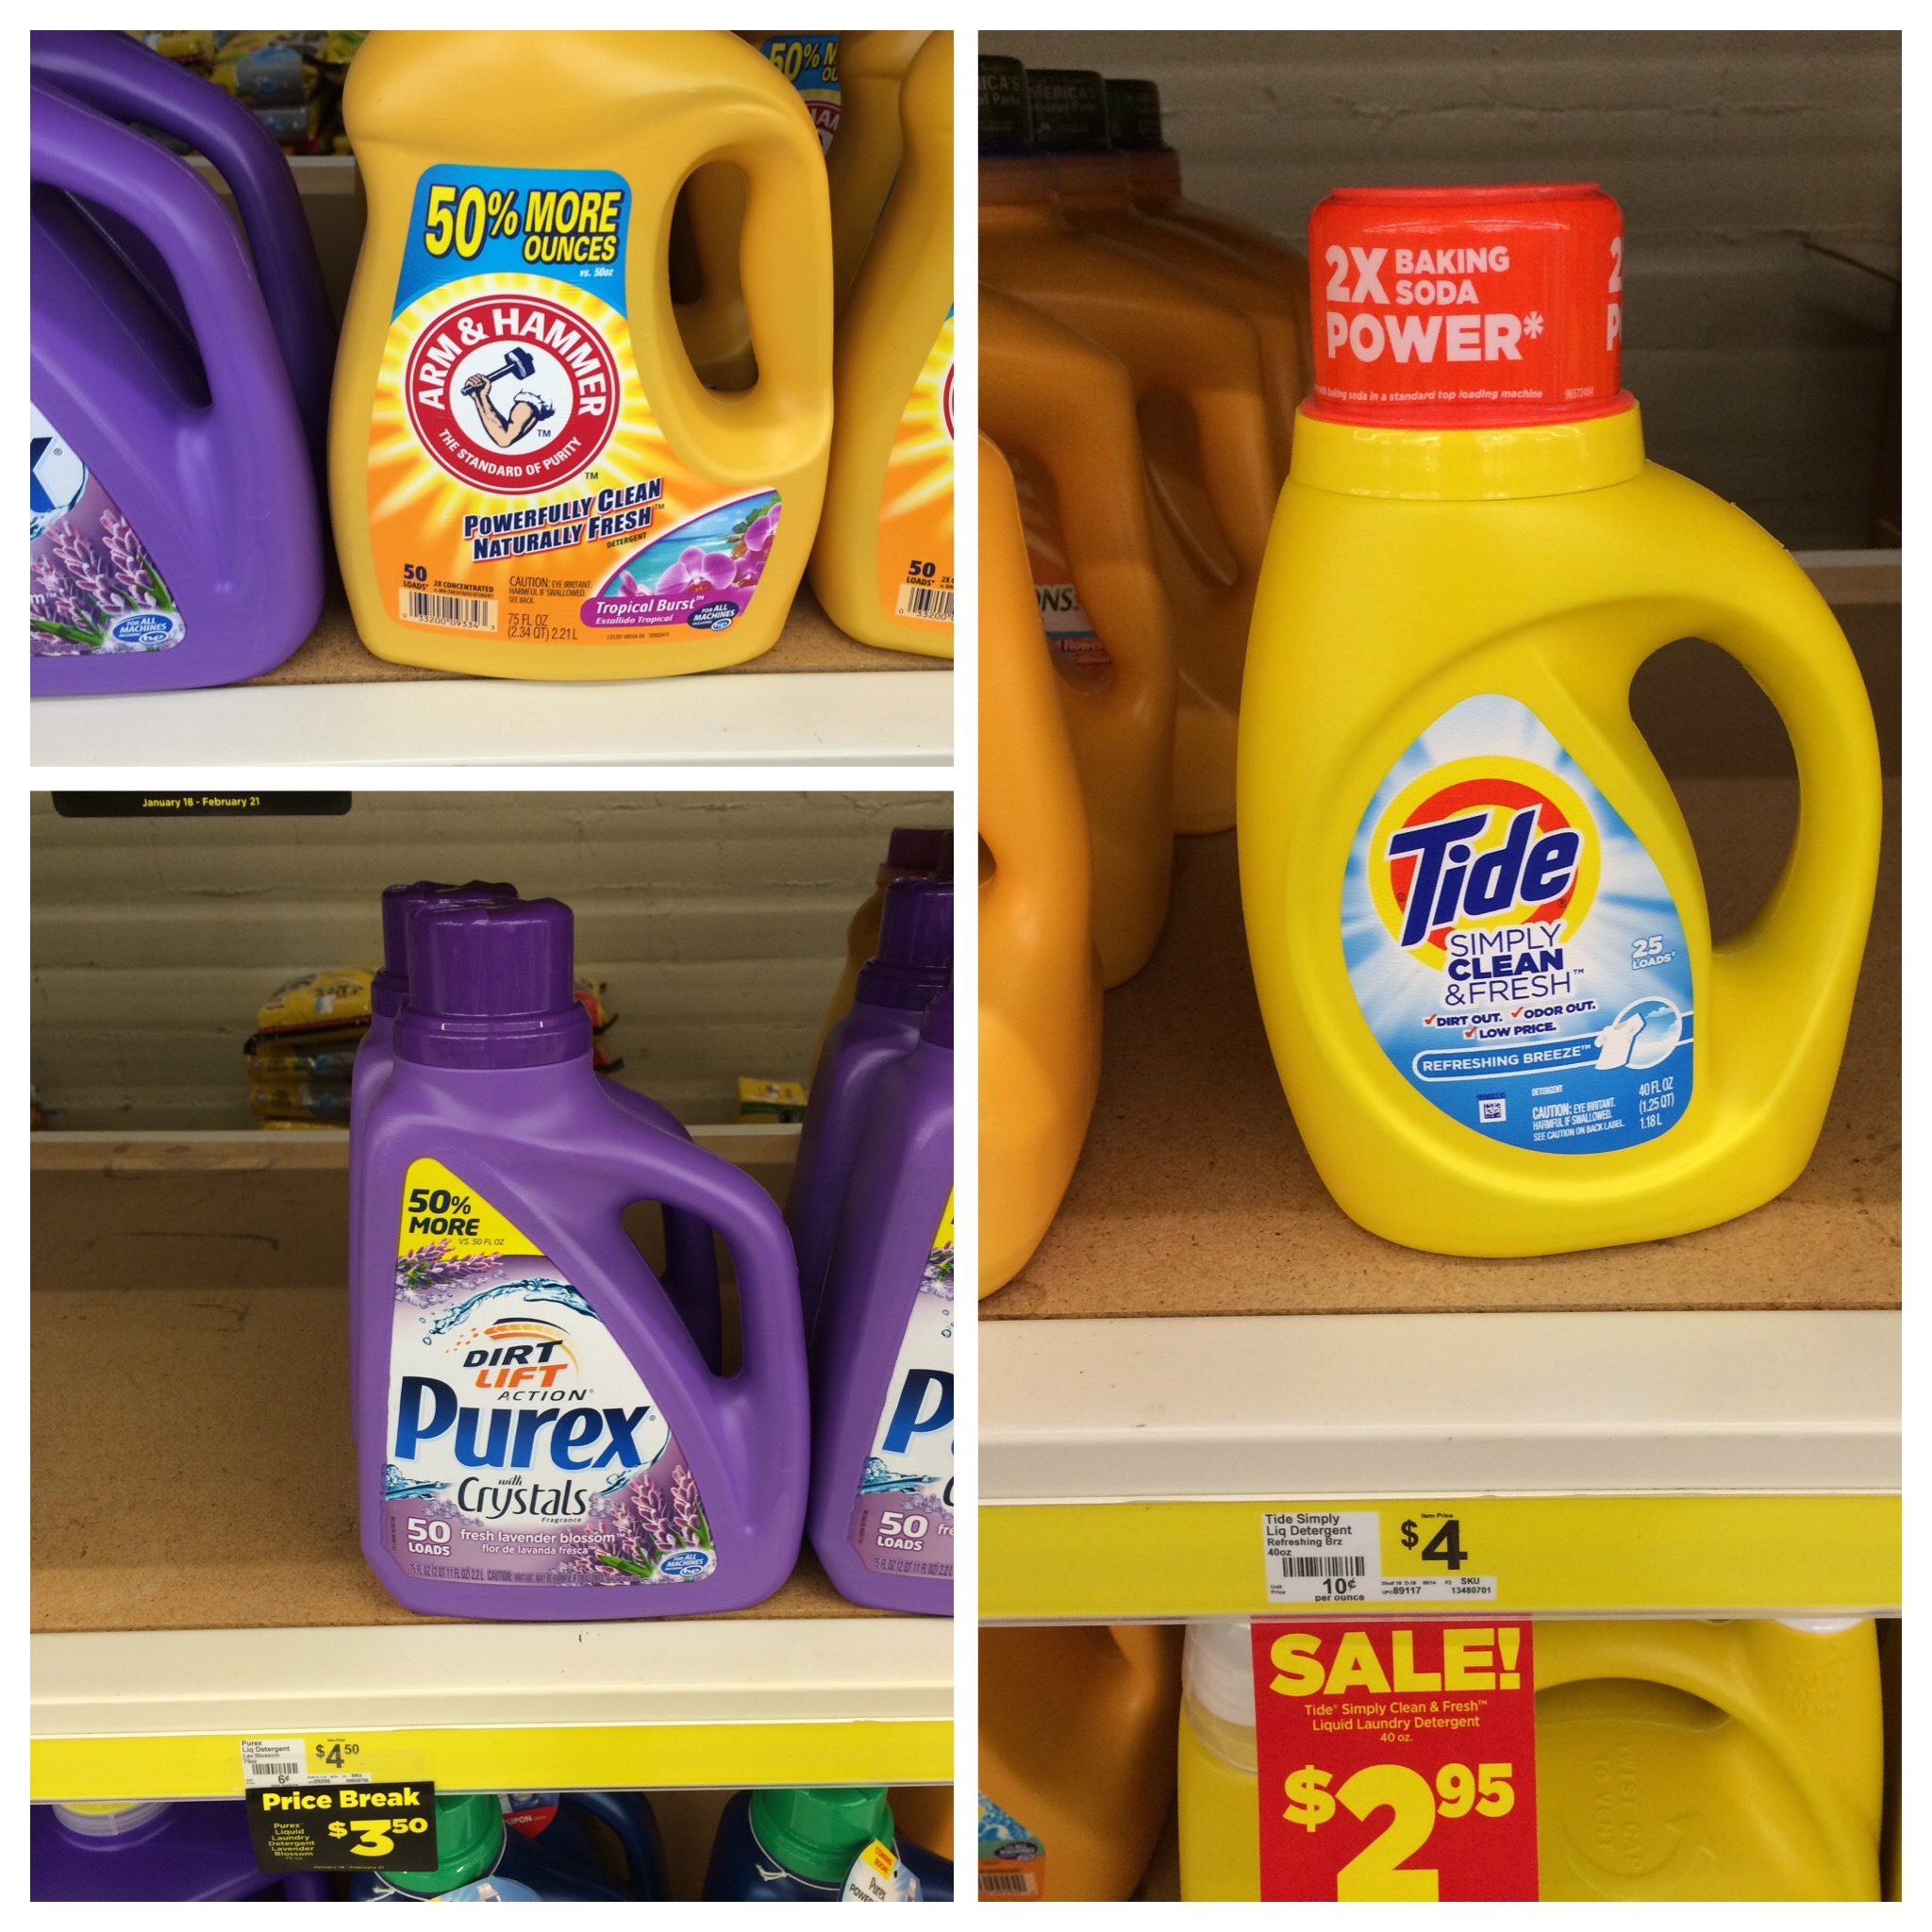 Dollar General 50 Glade Carpet Cleaner 2 Tide Simply